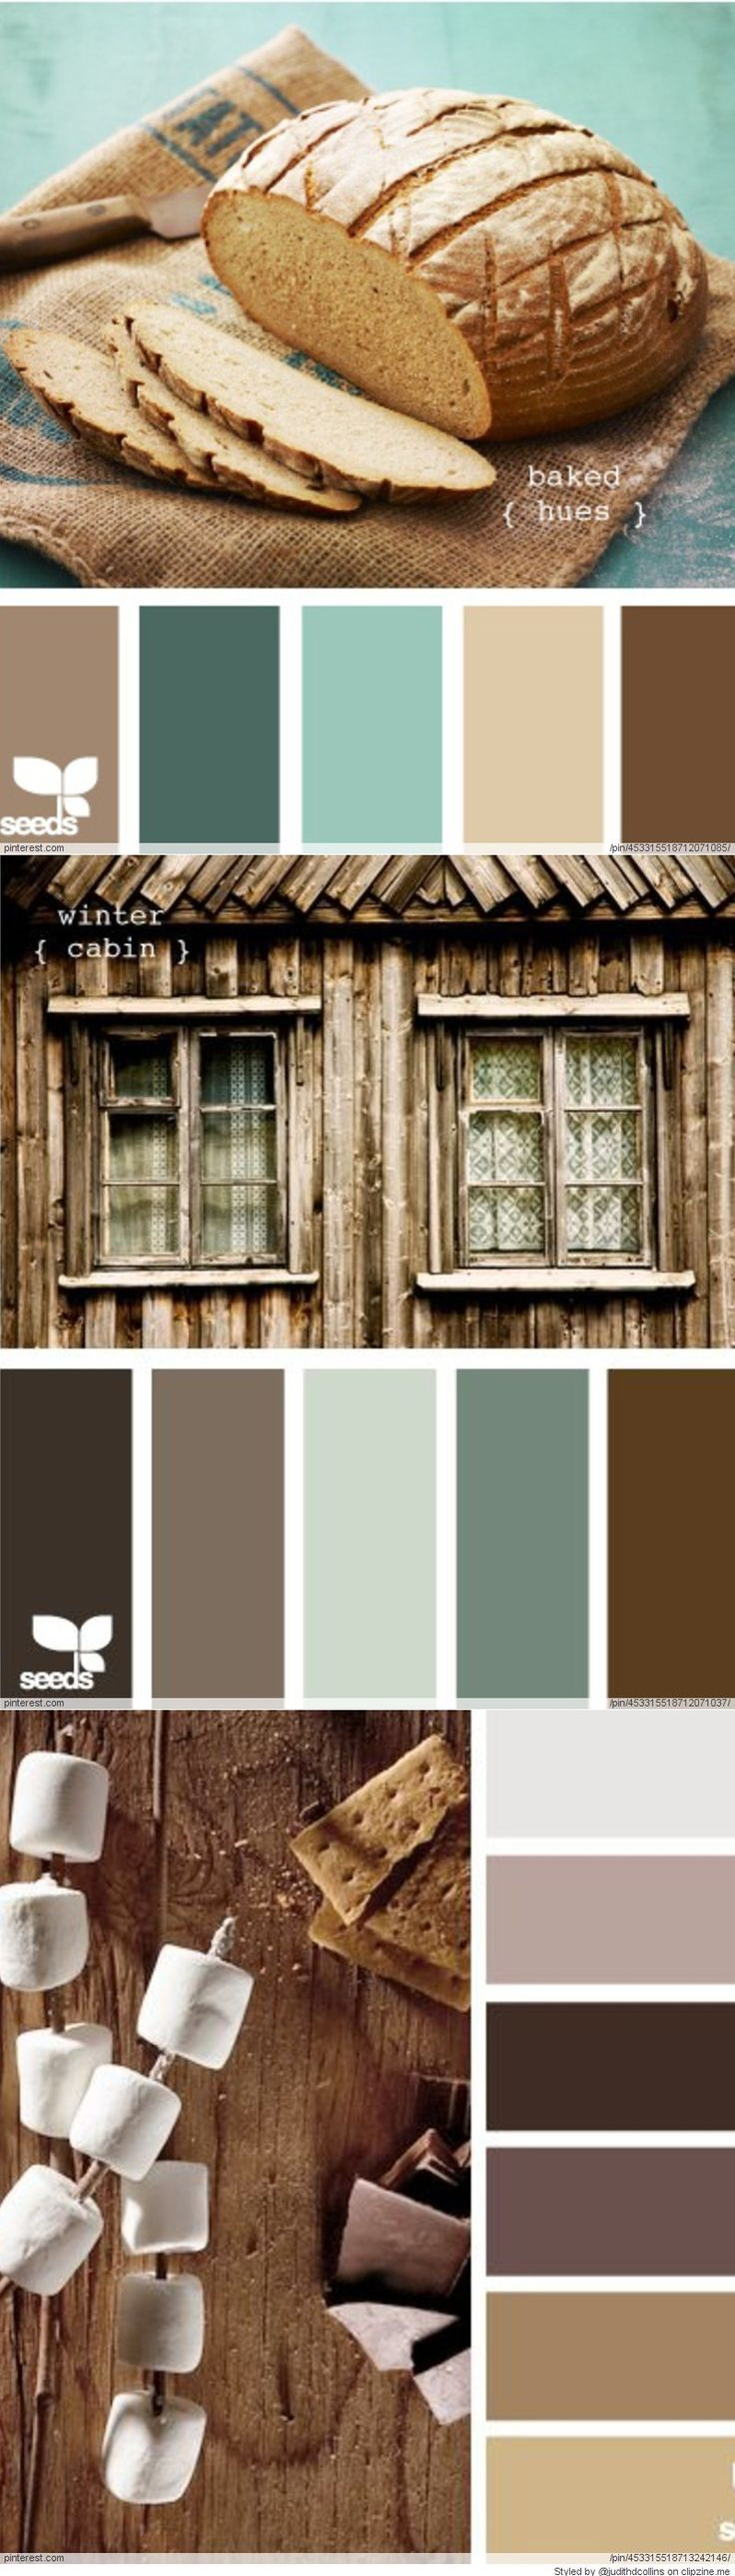 Rustic Color Schemes Best 25 Rustic Color Schemes Ideas On Pinterest Rustic Colors